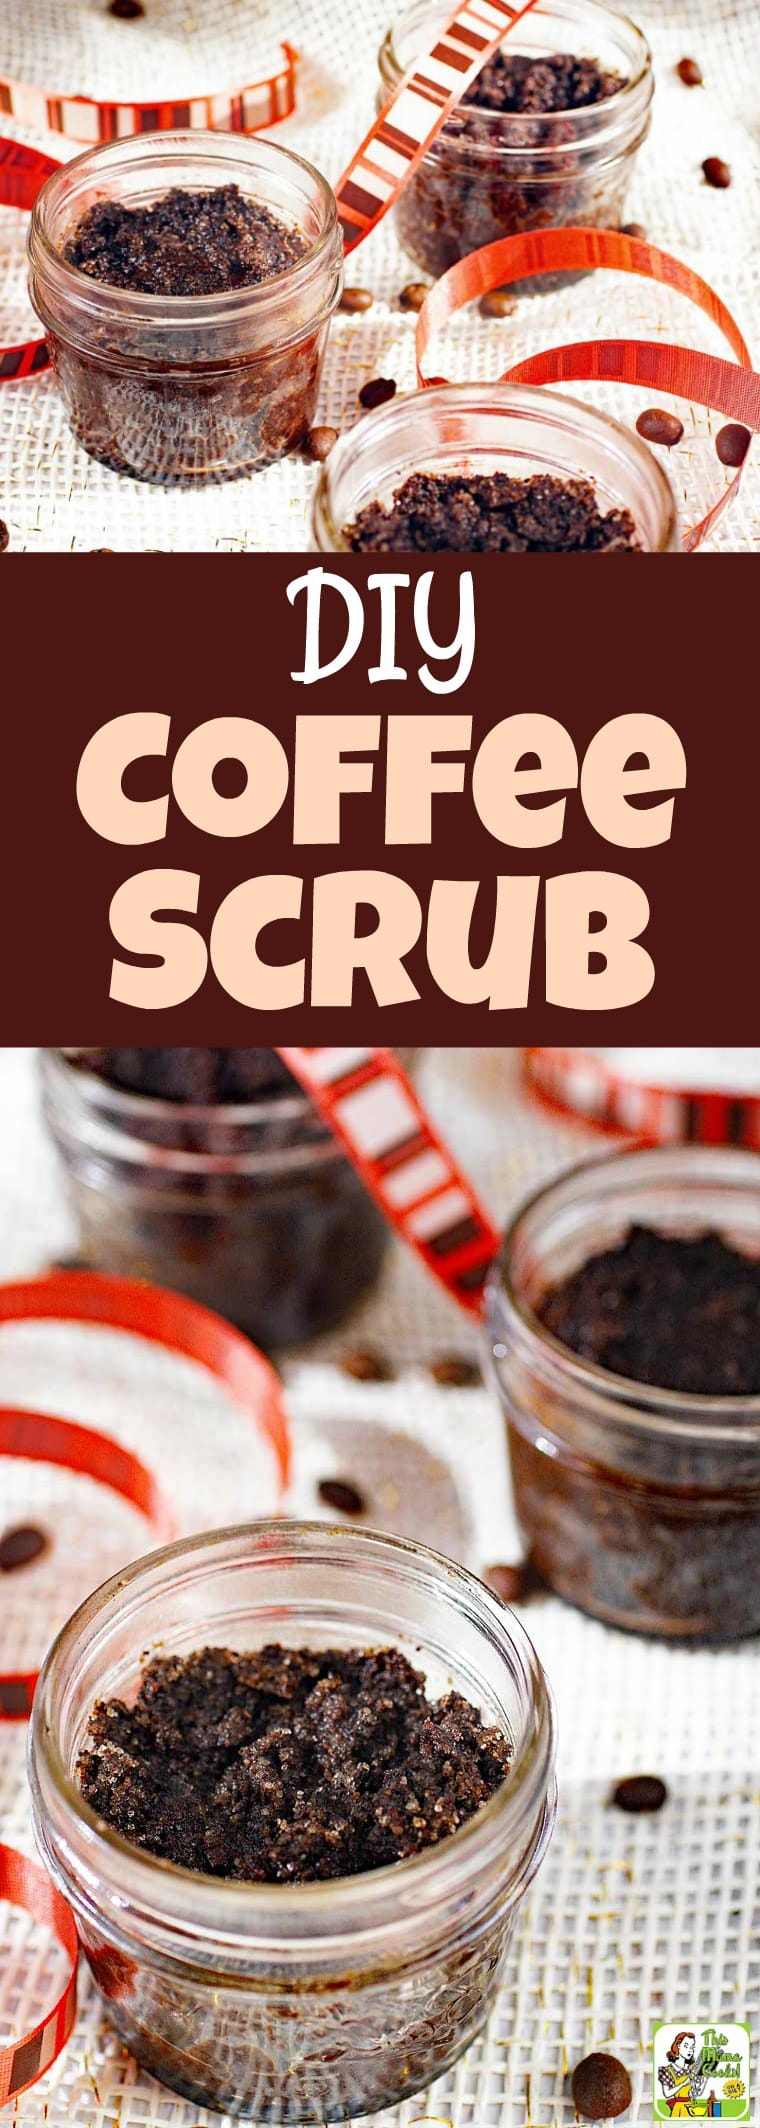 DIY Coffee Scrub - this easy coffee scrub recipe makes a terrific homemade gift. This coffee body scrub exfoliates, reduces the appearance of cellulite, and leaves your skin feeling soft! #recipe #easy #recipeoftheday #coffee #DIY #DIYgifts #coconutoil #sugarscrub